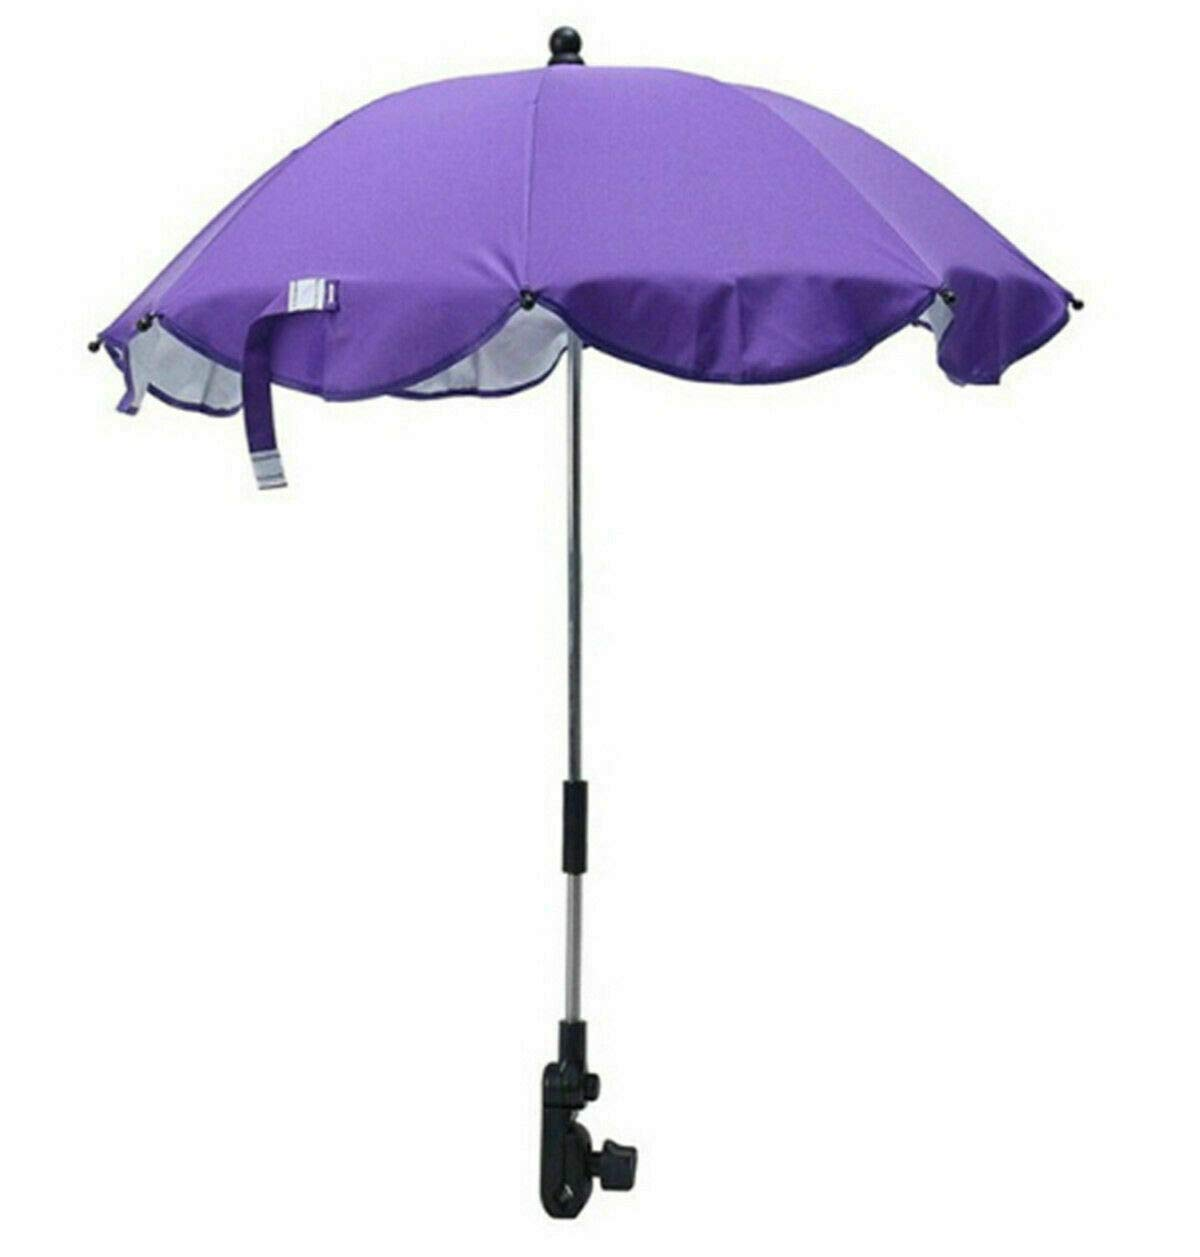 Global Supplies Present Flexible Baby Sun Umbrella Parasol Buggy Pushchair Shade in Purple